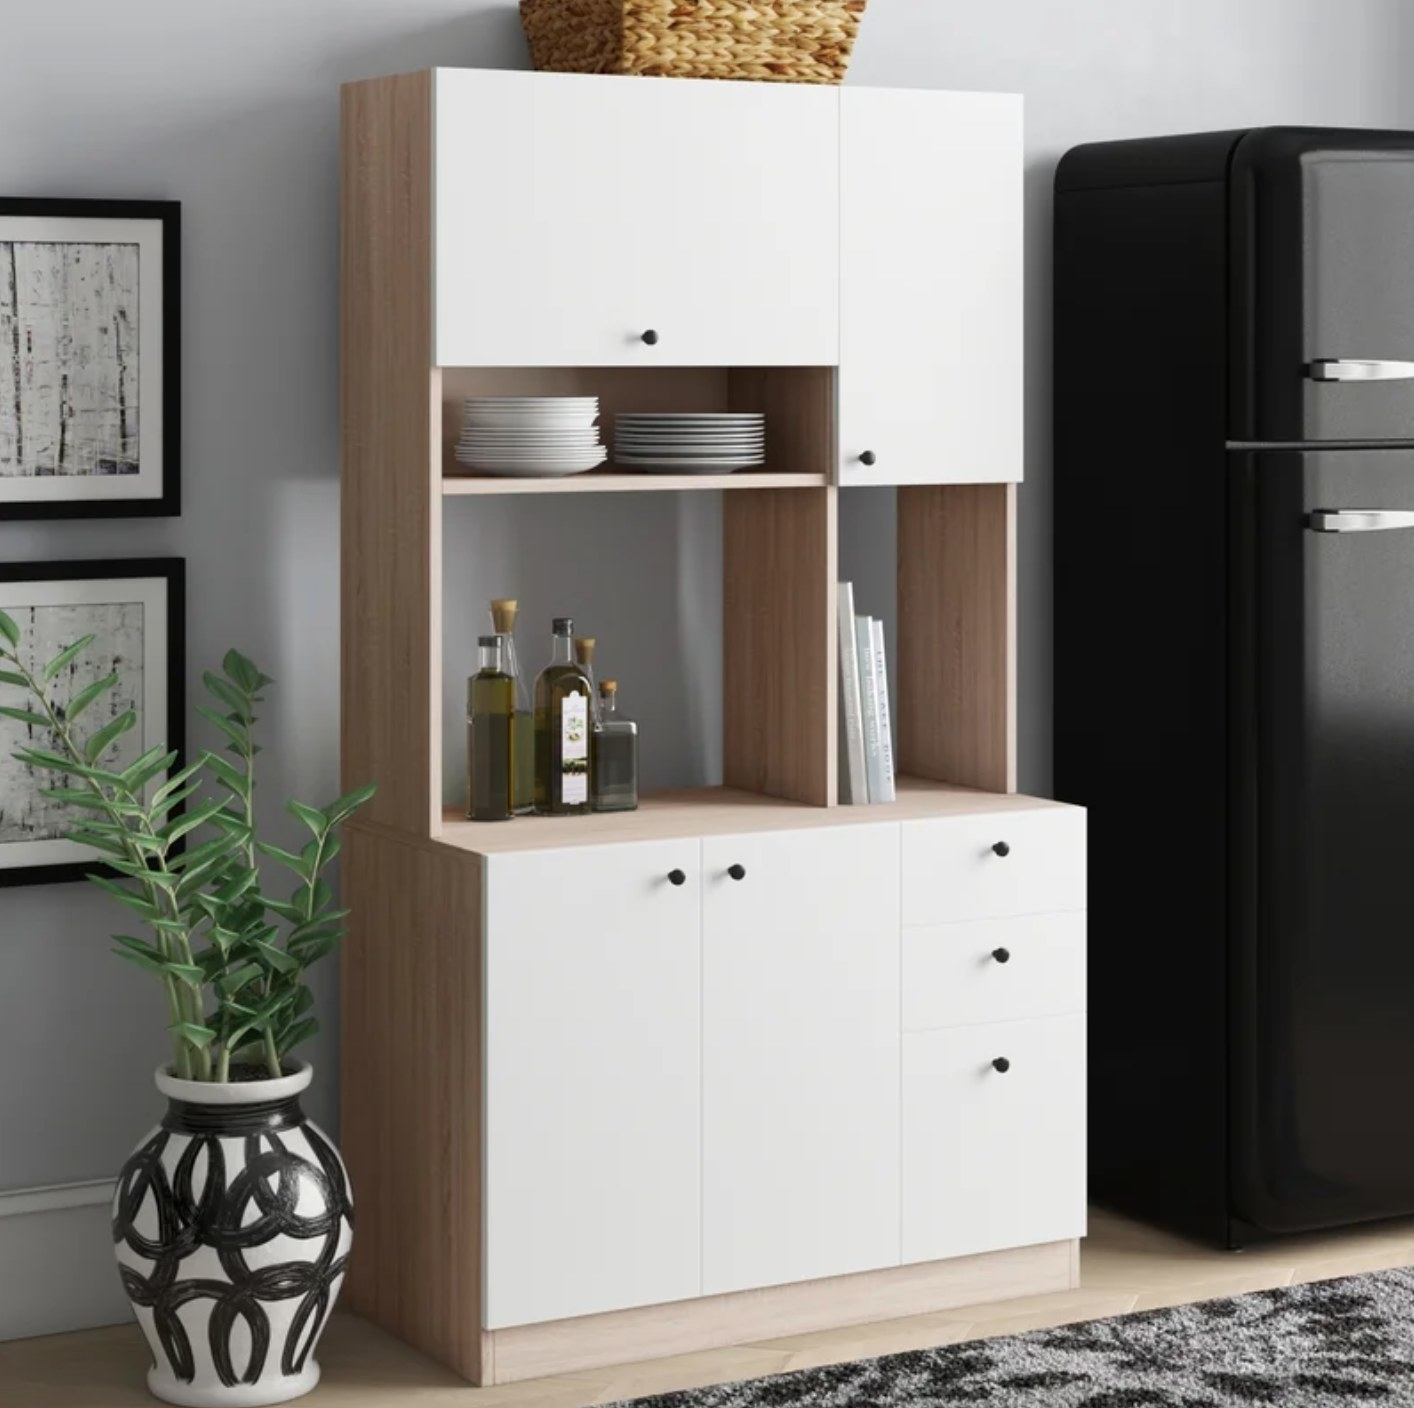 The kitchen pantry in white and beige